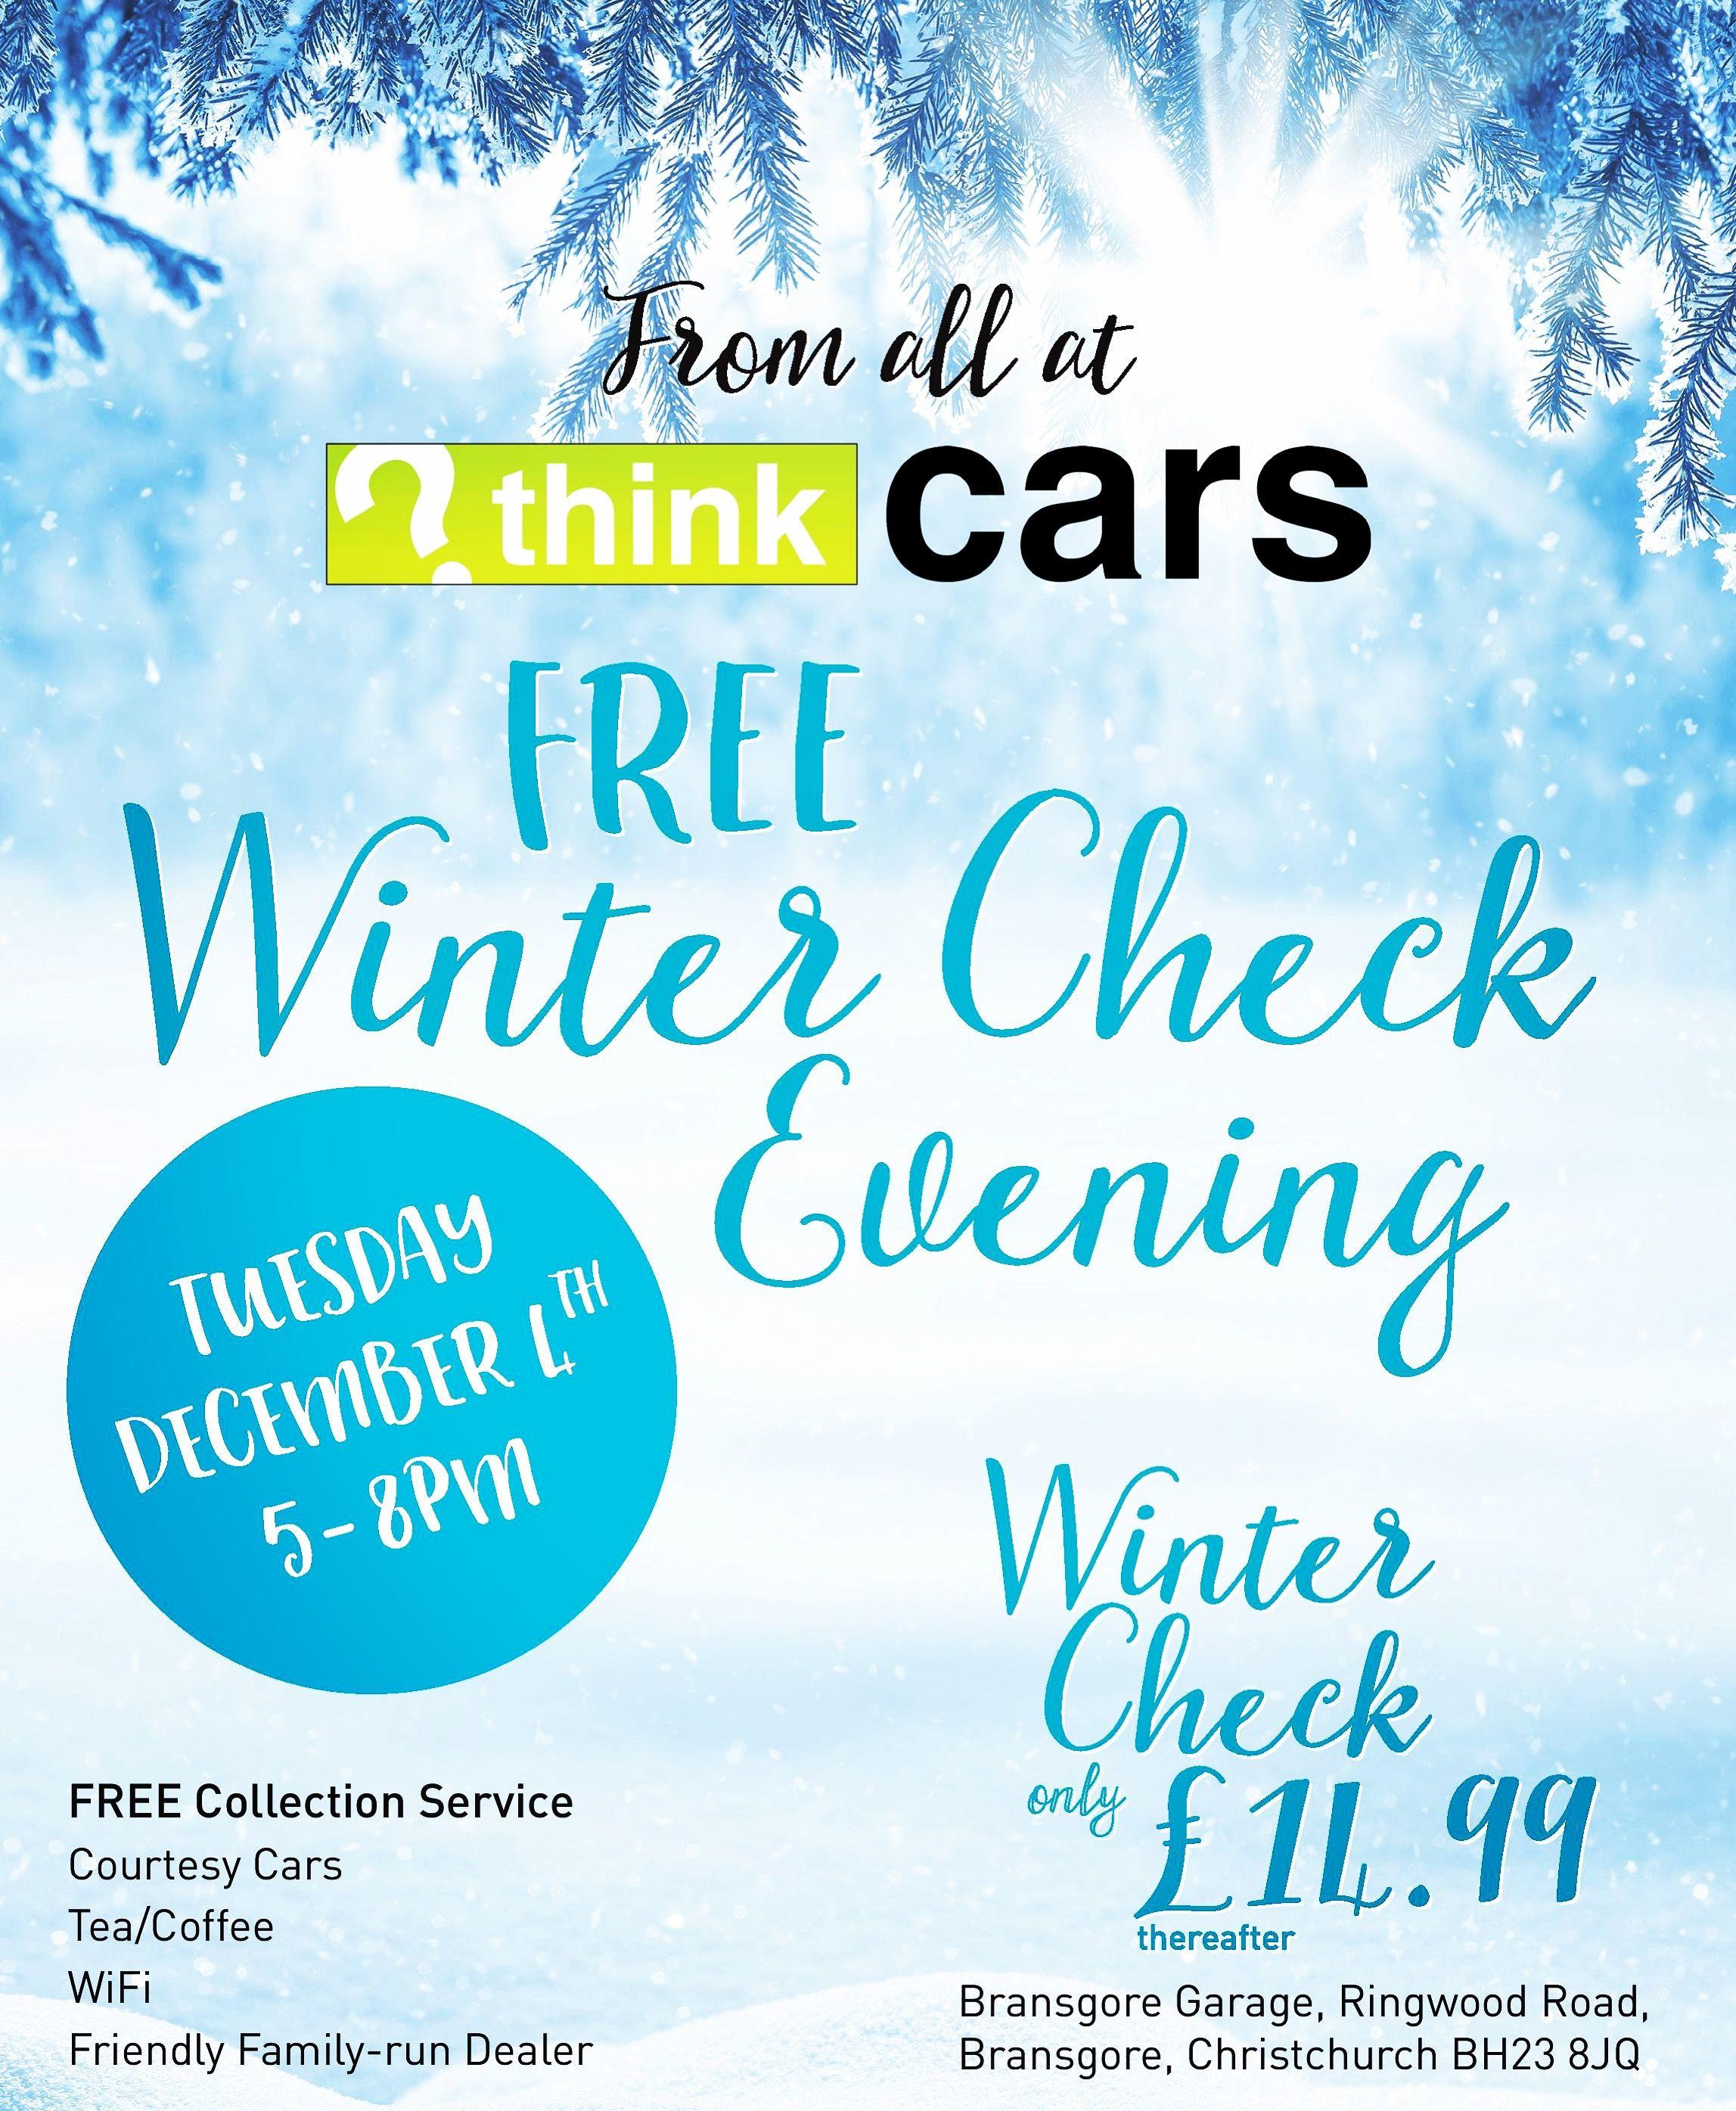 ❄️ Free Winter Check Evening at Think Cars! ❄️